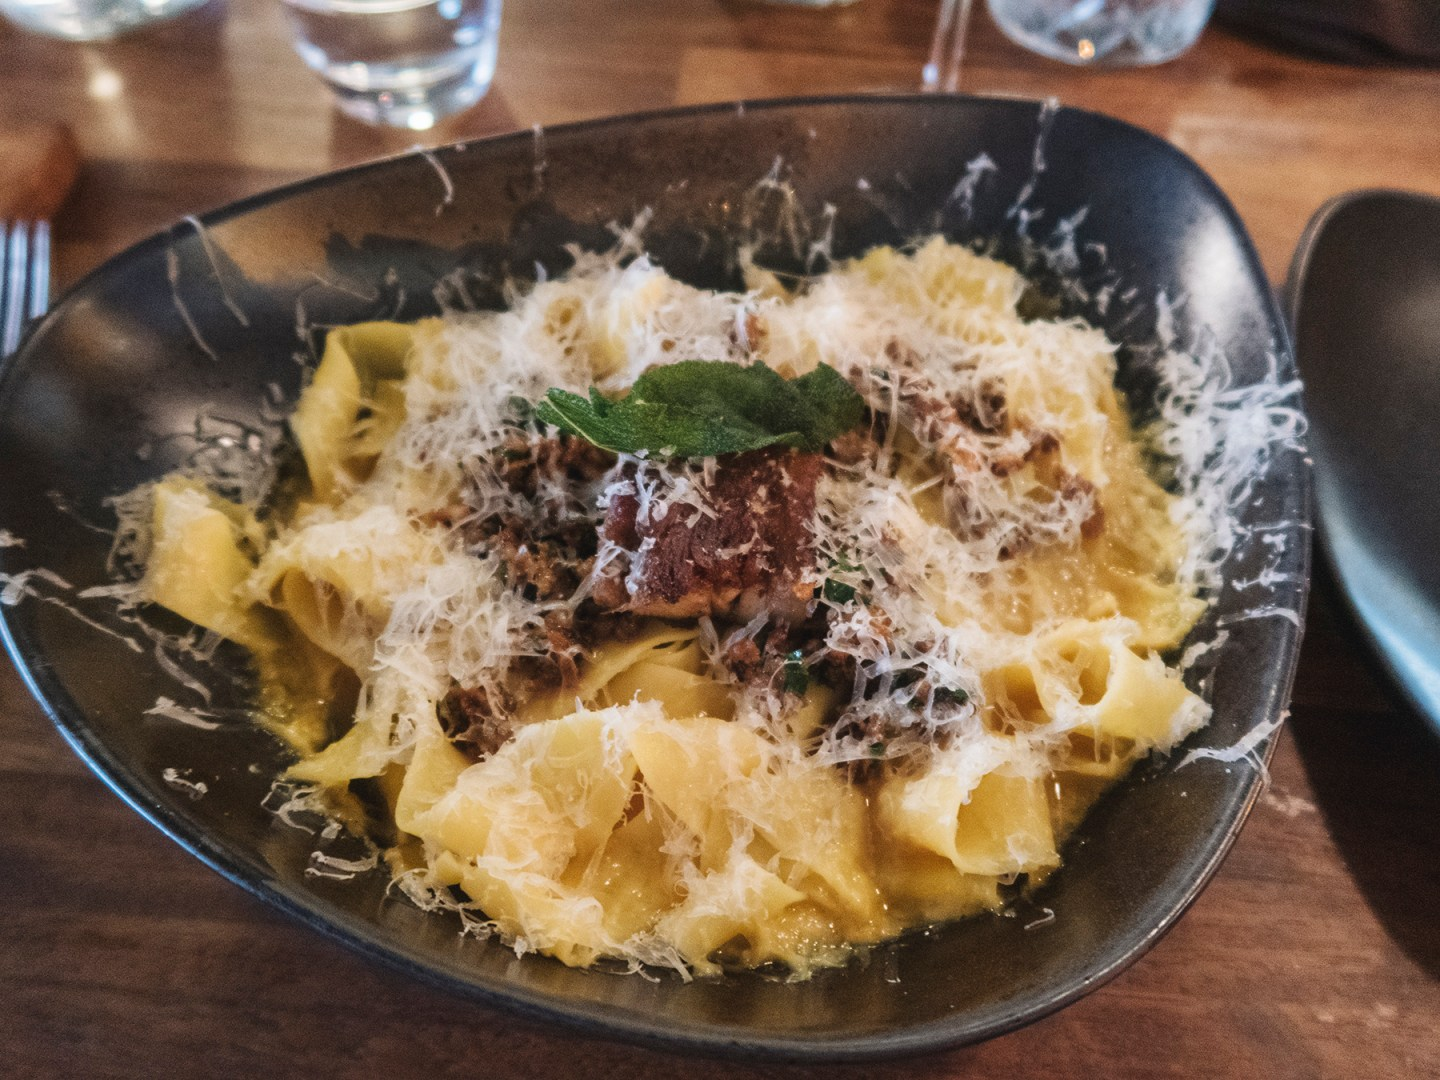 Pasta dish from the Rustic Stone Restaurant in Dublin Ireland